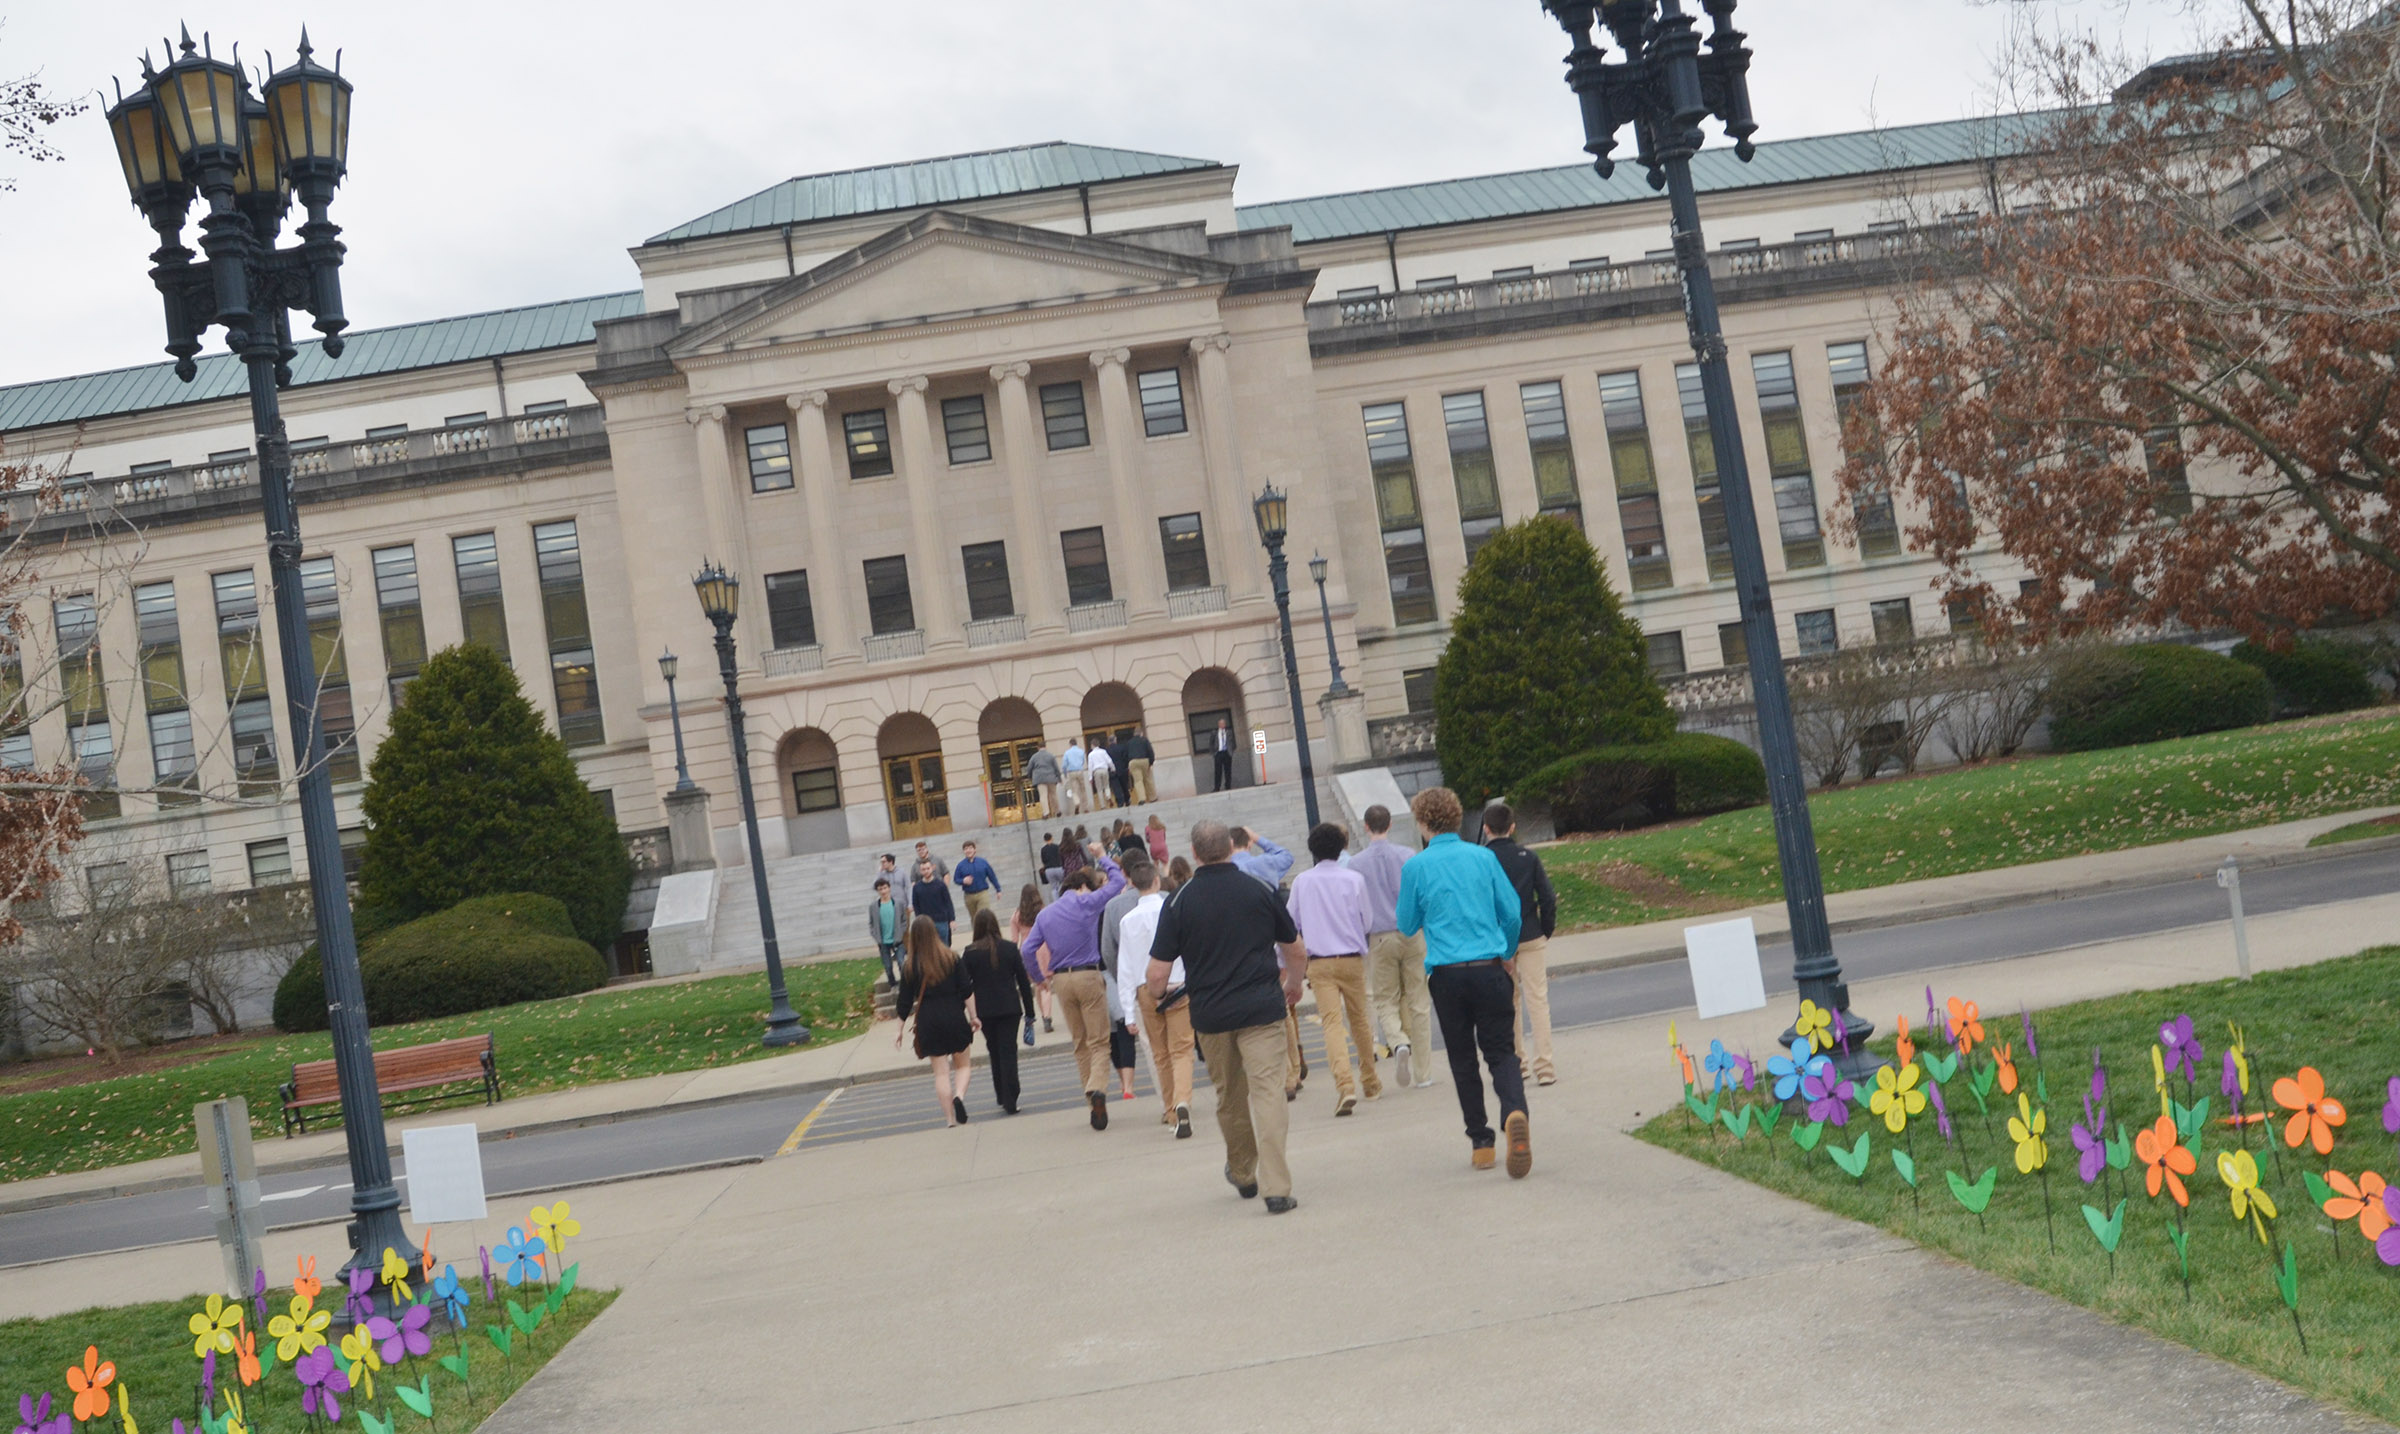 LOCK leadership students walk to the Kentucky capitol annex.